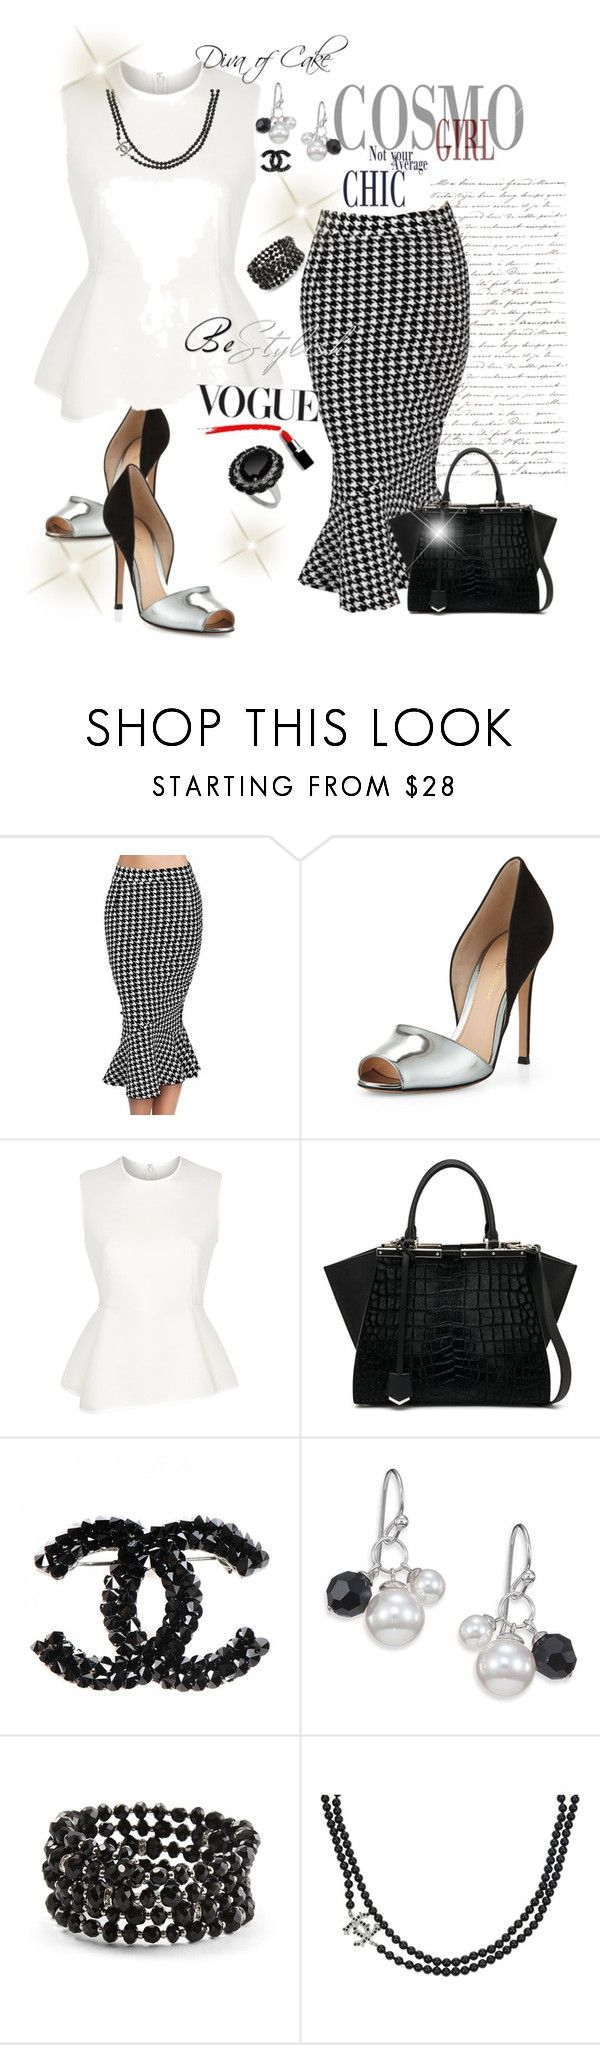 """""""Diva Vogue fashion"""" by kercey ❤ liked on Polyvore featuring WithChic, Gianvito Rossi, Alexander Wang, Fendi, Majorica, White House Black Market and Chanel"""